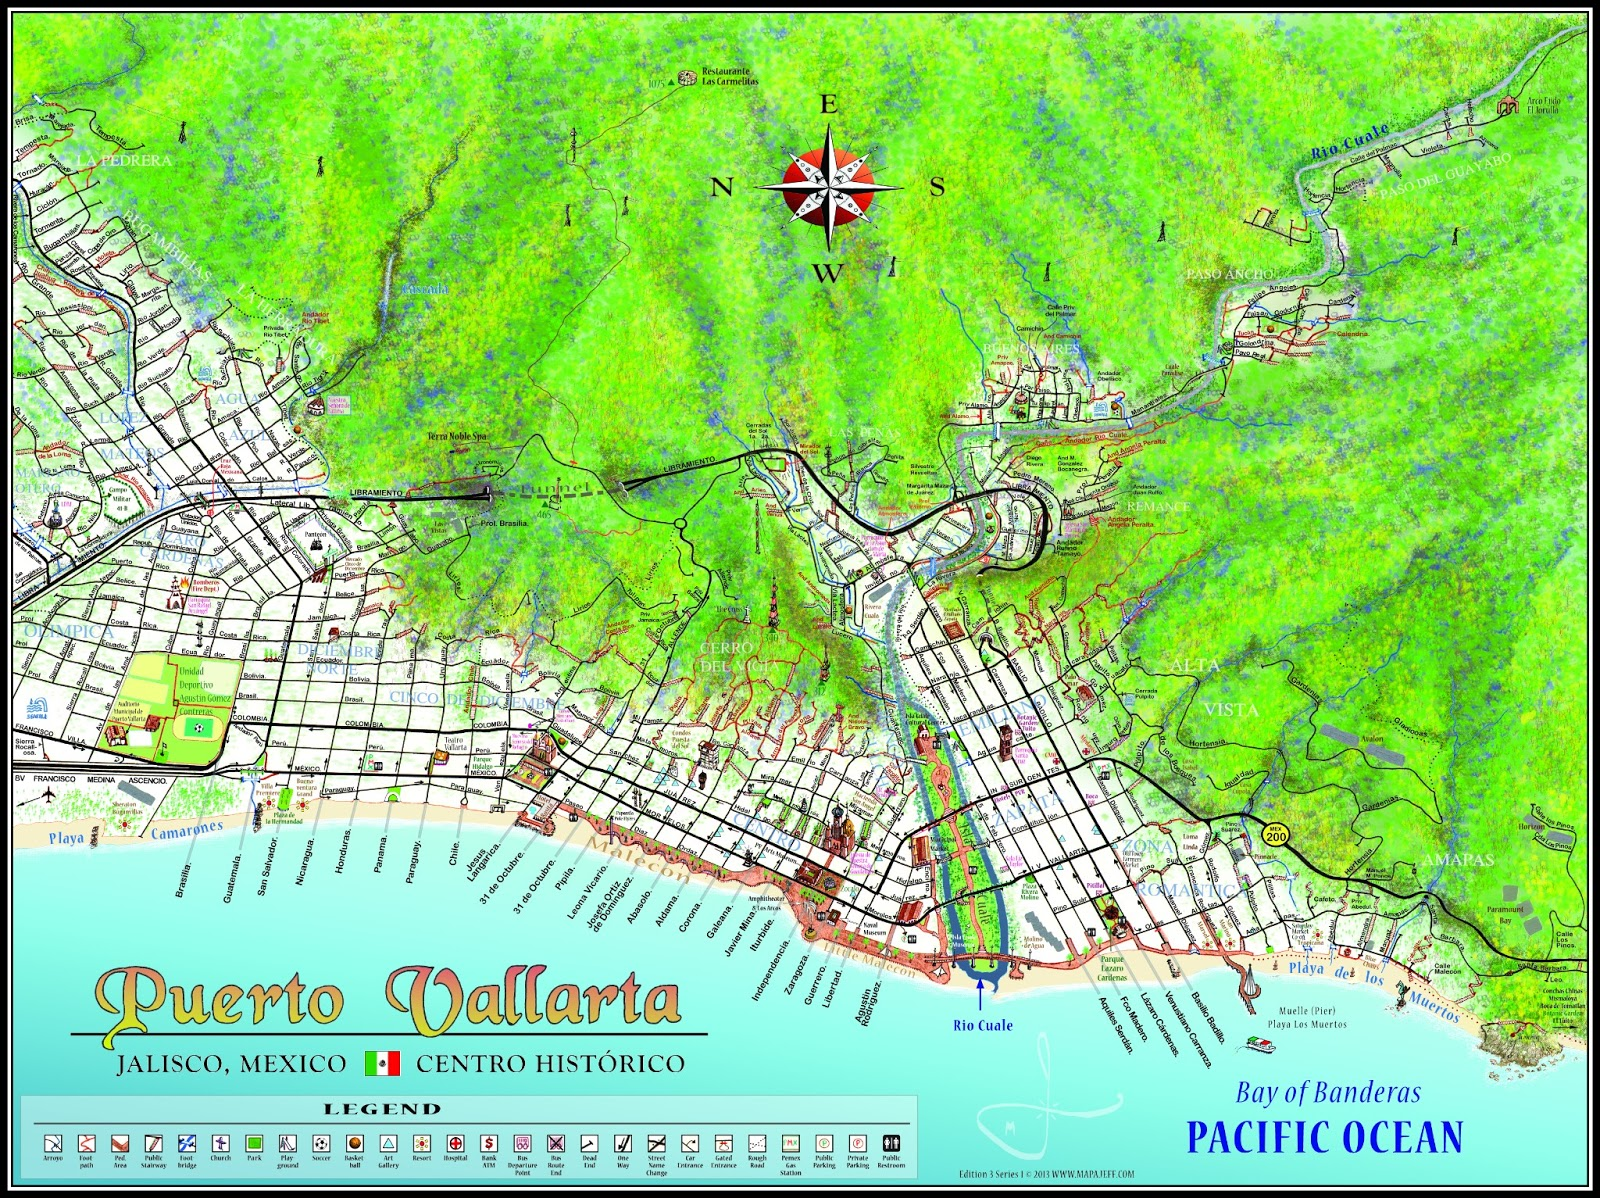 they show more of the central city and mountains than the walking maps andare suitable for framing. mapa jeff cartography puerto vallarta maps